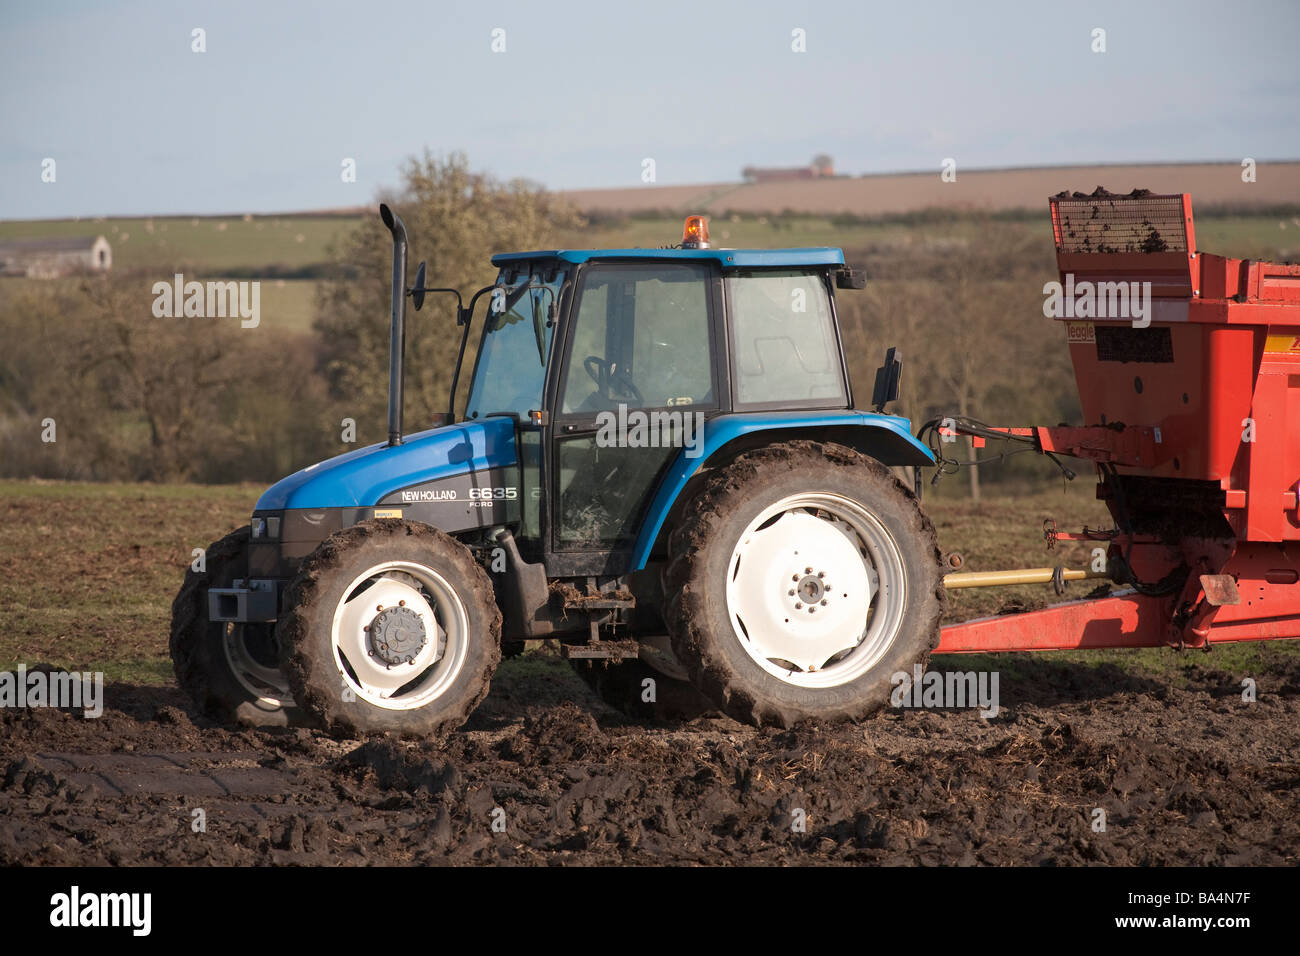 Ford New Holland 6635 tractor and Teagle Rear Discharge Muck Spreader in a field in Warwickshire England UK - Stock Image